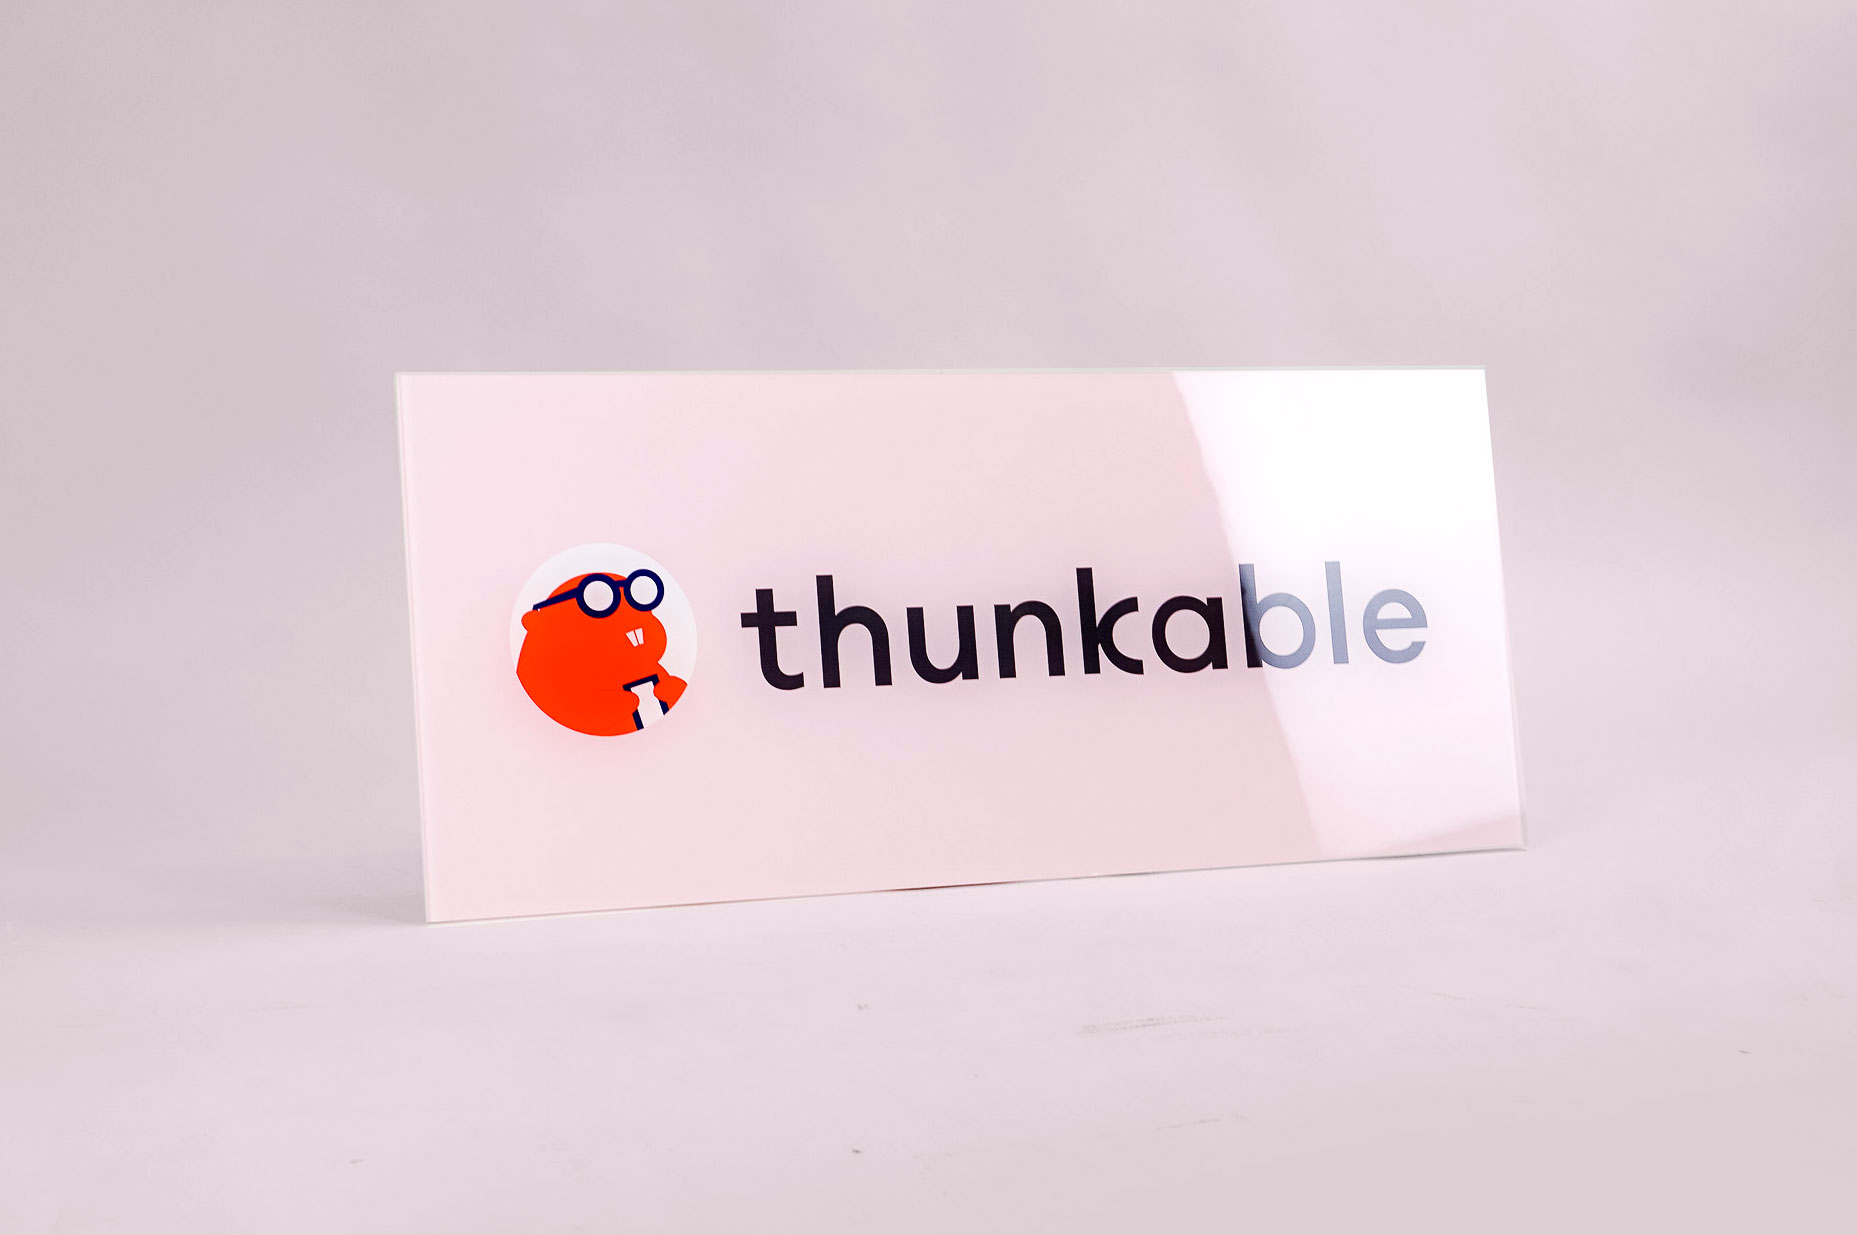 Glass-like, pink back printed sign for Thunkable, a cross-platform app builder that enables anyone to build their own native mobile apps.